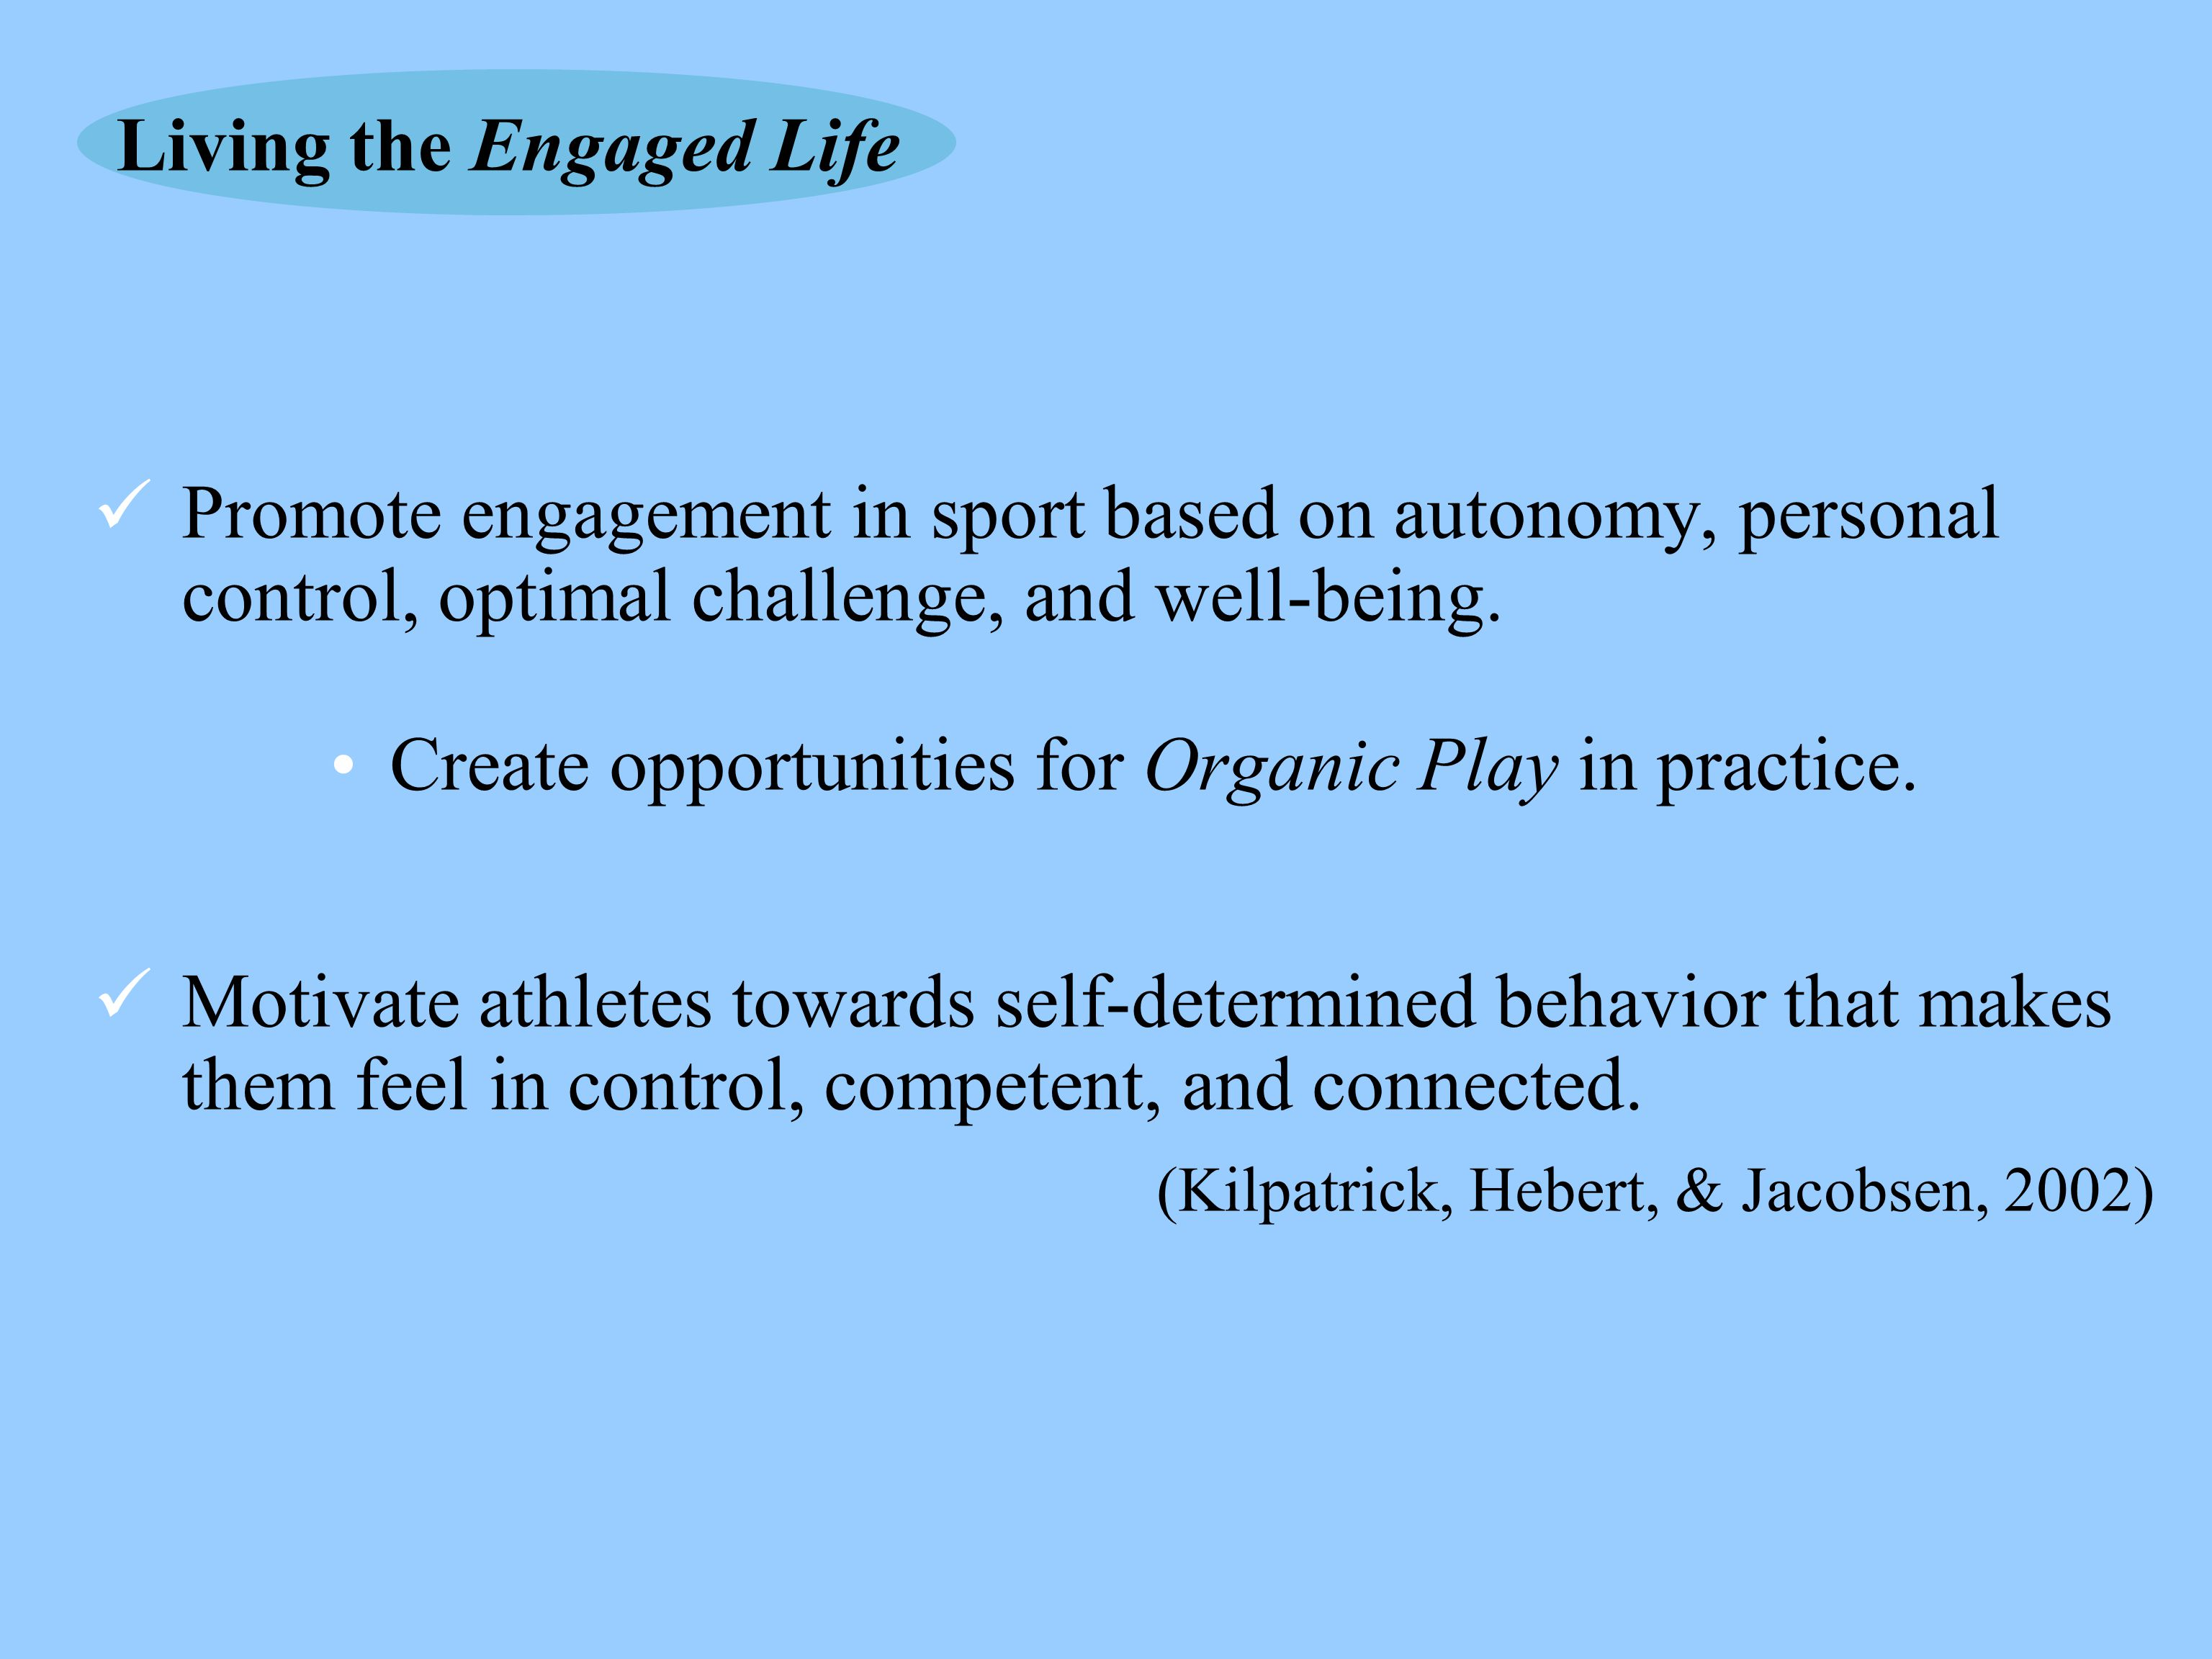 Promote engagement in sport based on autonomy, personal control, optimal challenge, and well-being. Create opportunities for Organic Play in practice.